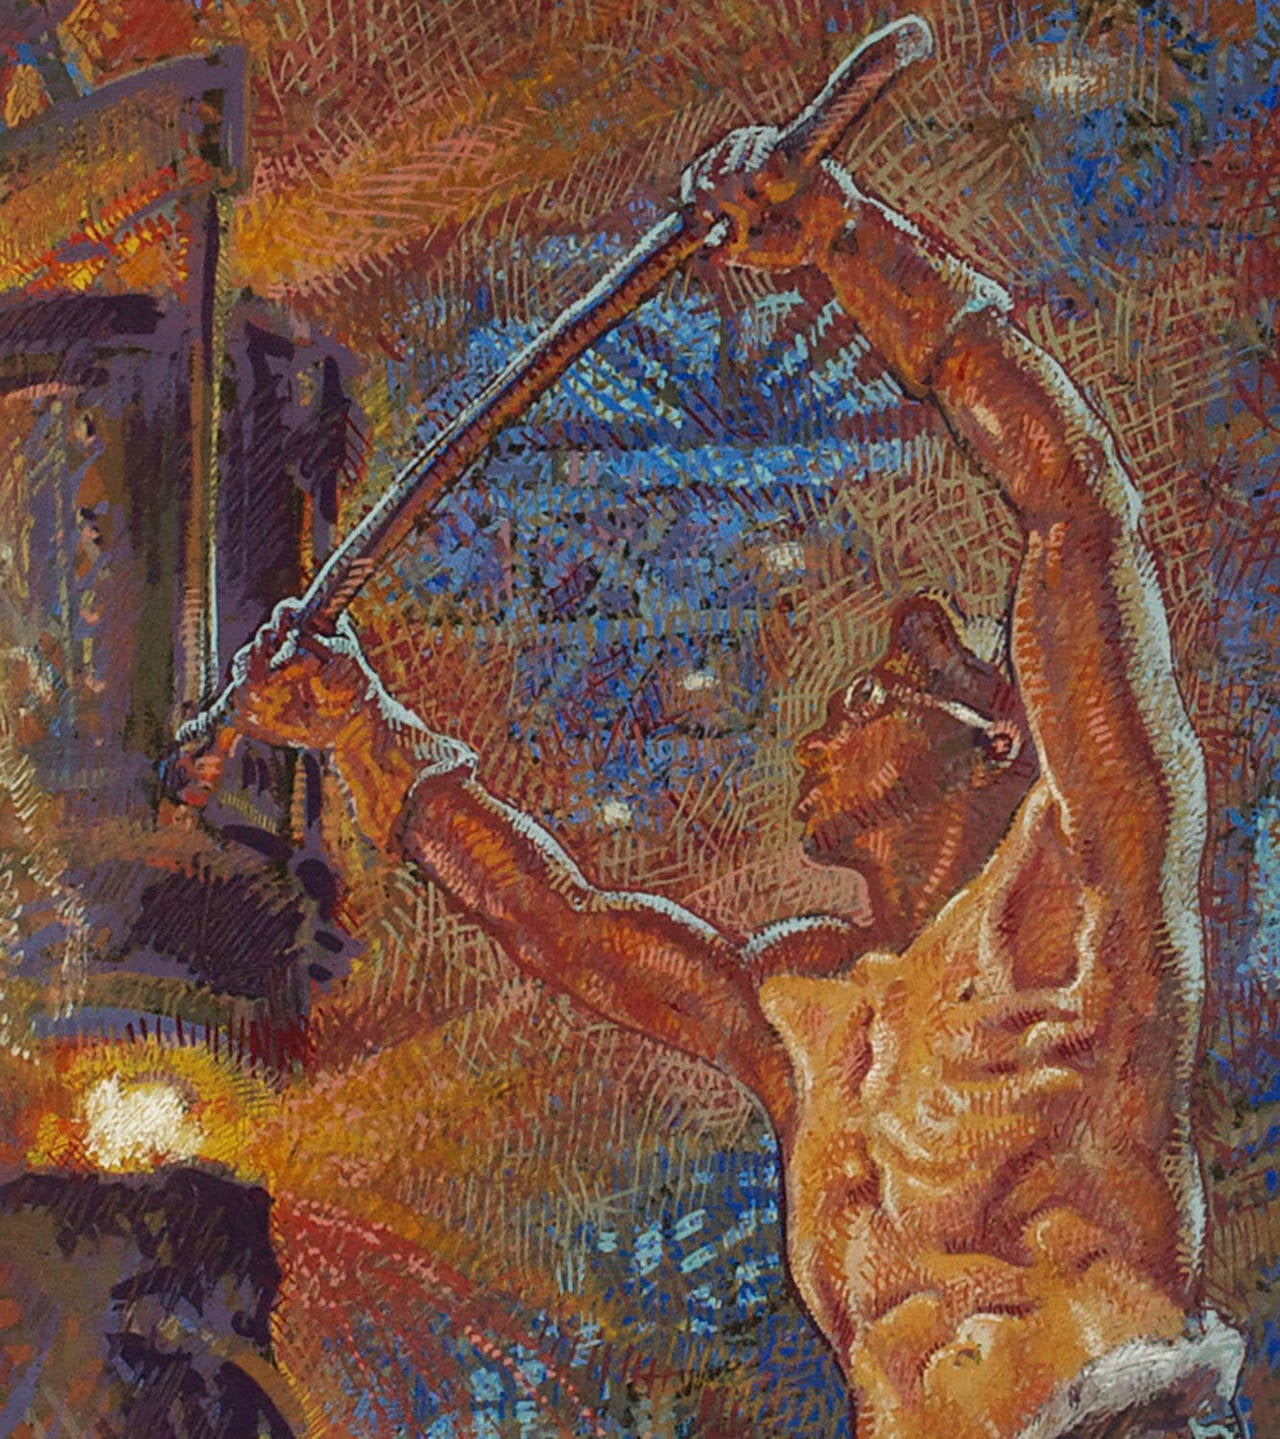 This progress-through-industry themed gouache painting by Mahlon Blaine is signed and dated 1955. The image dramatizes the industrial era with a shirtless industrial worker forging steel in a machine age apocalyptic scene that blends a mid-century